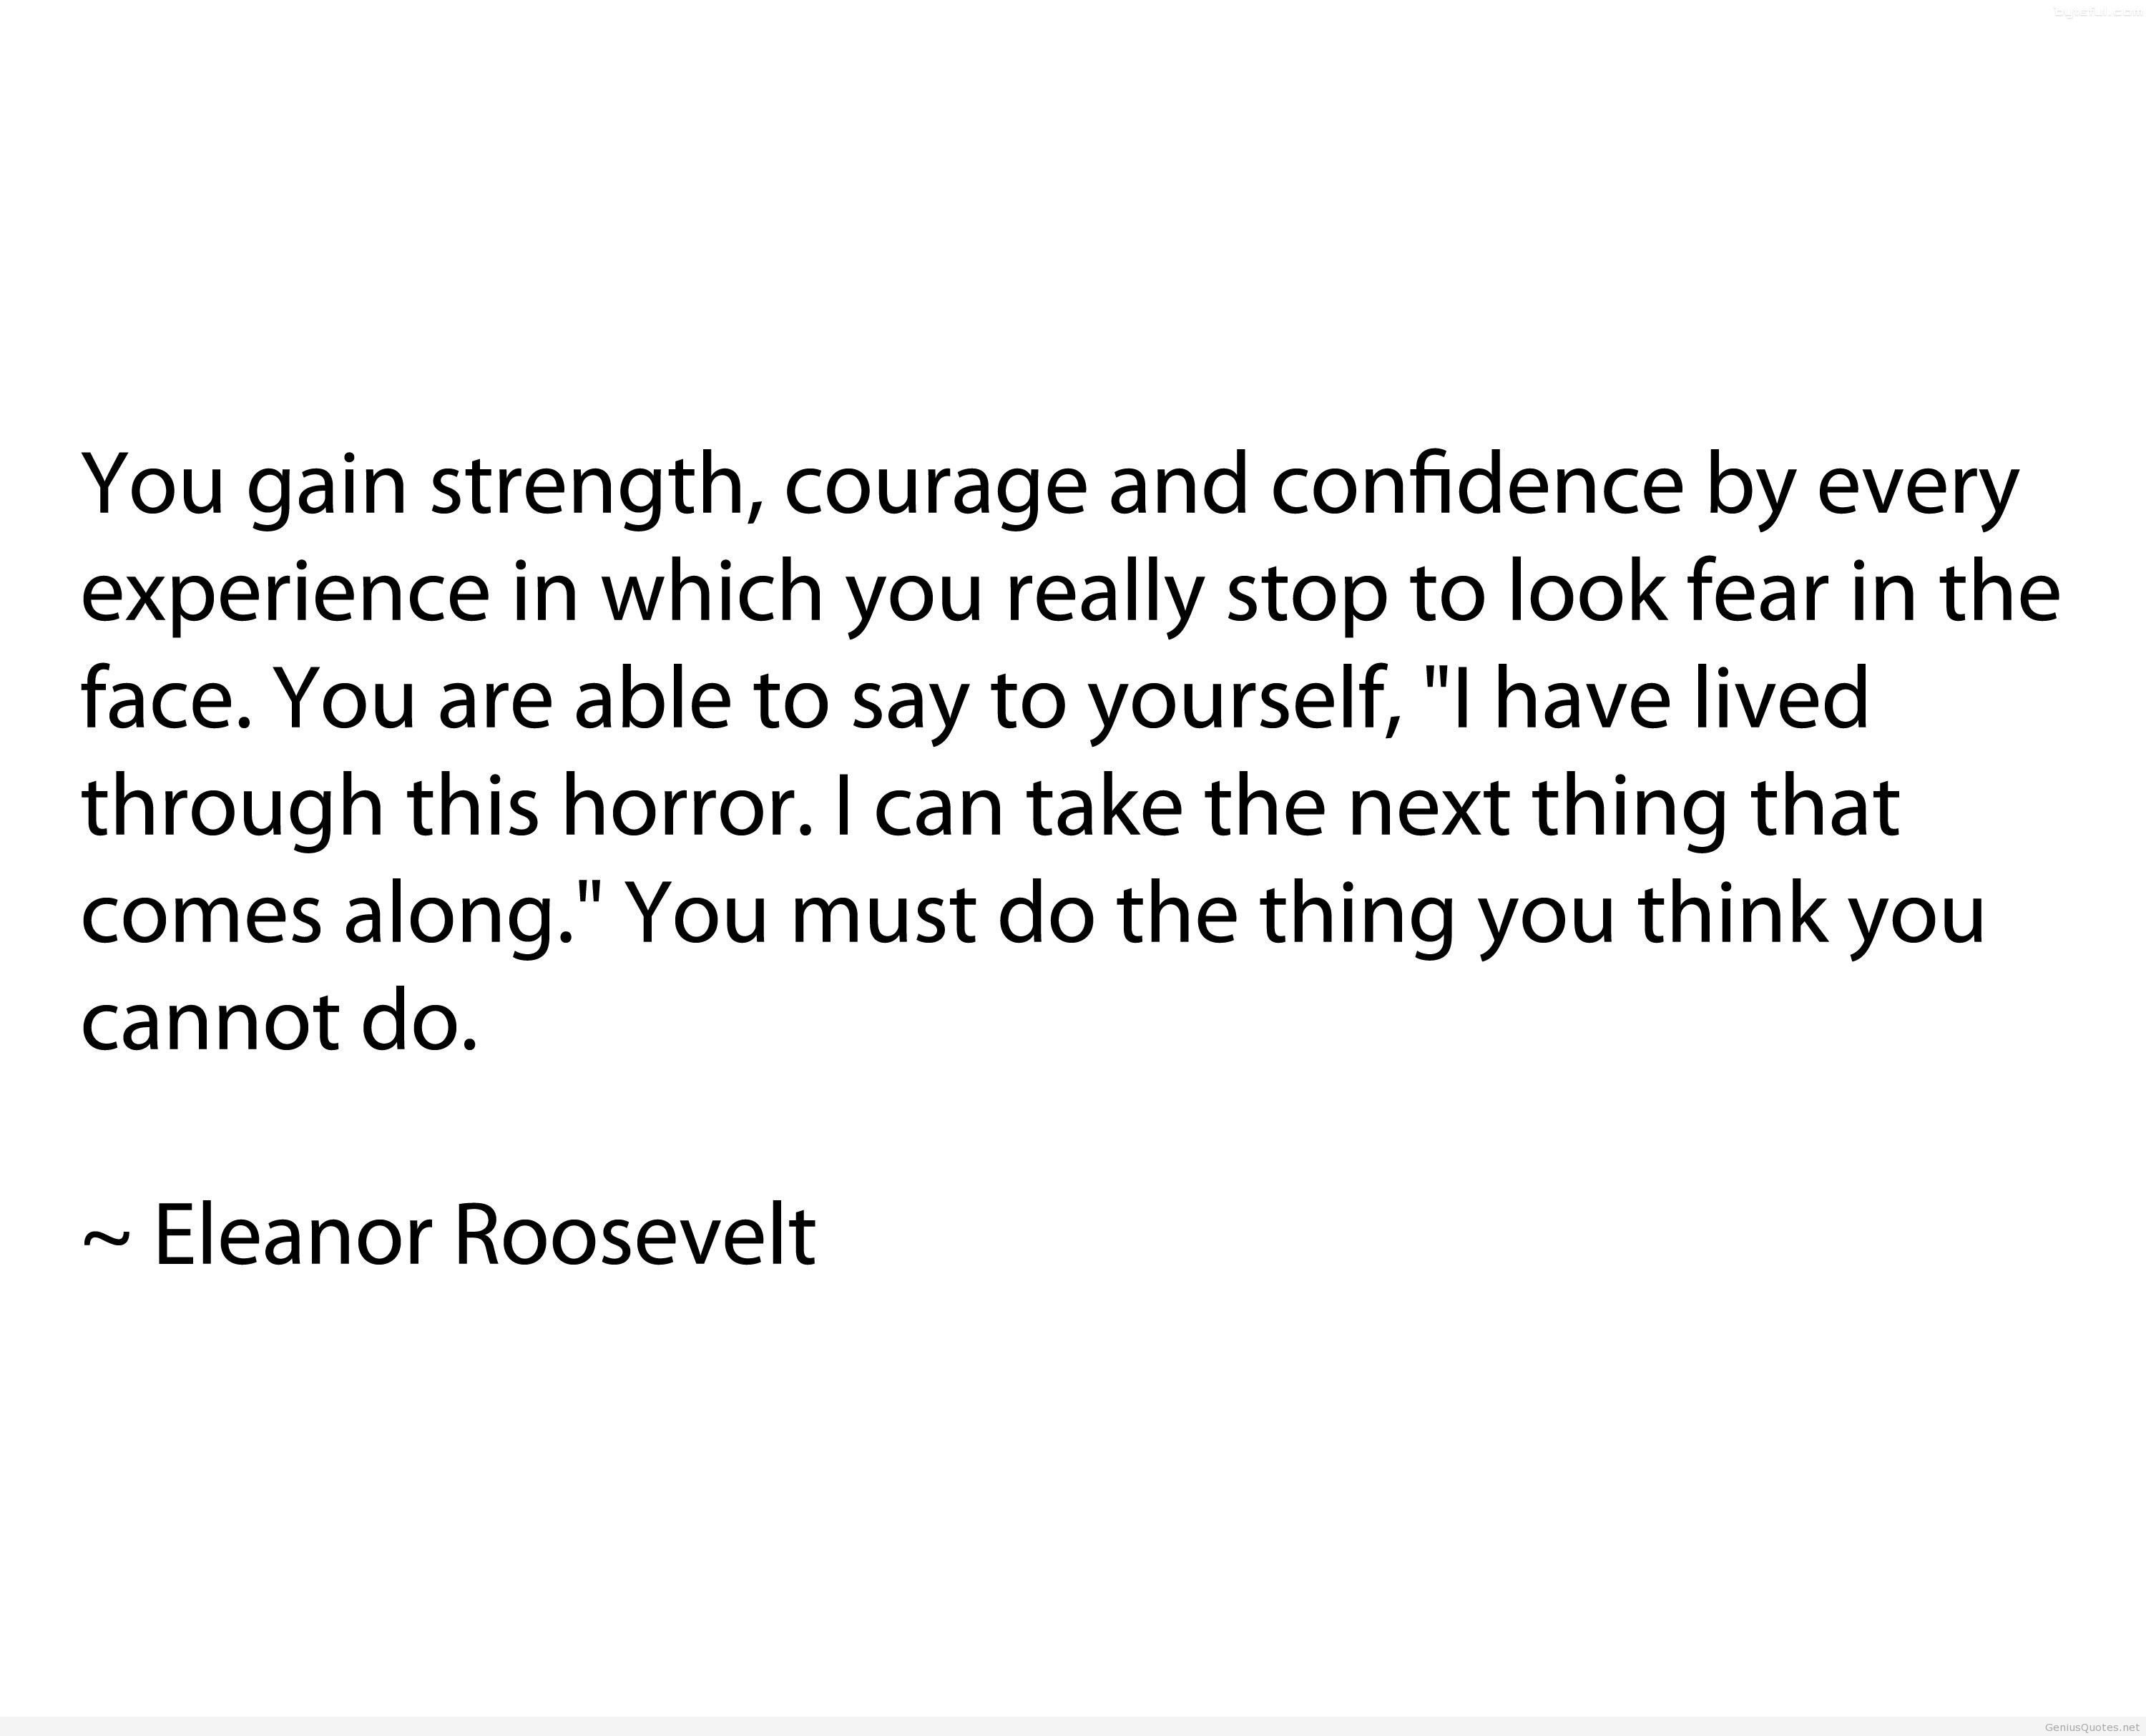 Quotes Eleanor Roosevelt Inspiration Genius Quotes  Part 843  Lotus  Blossom Inspiration  Pinterest